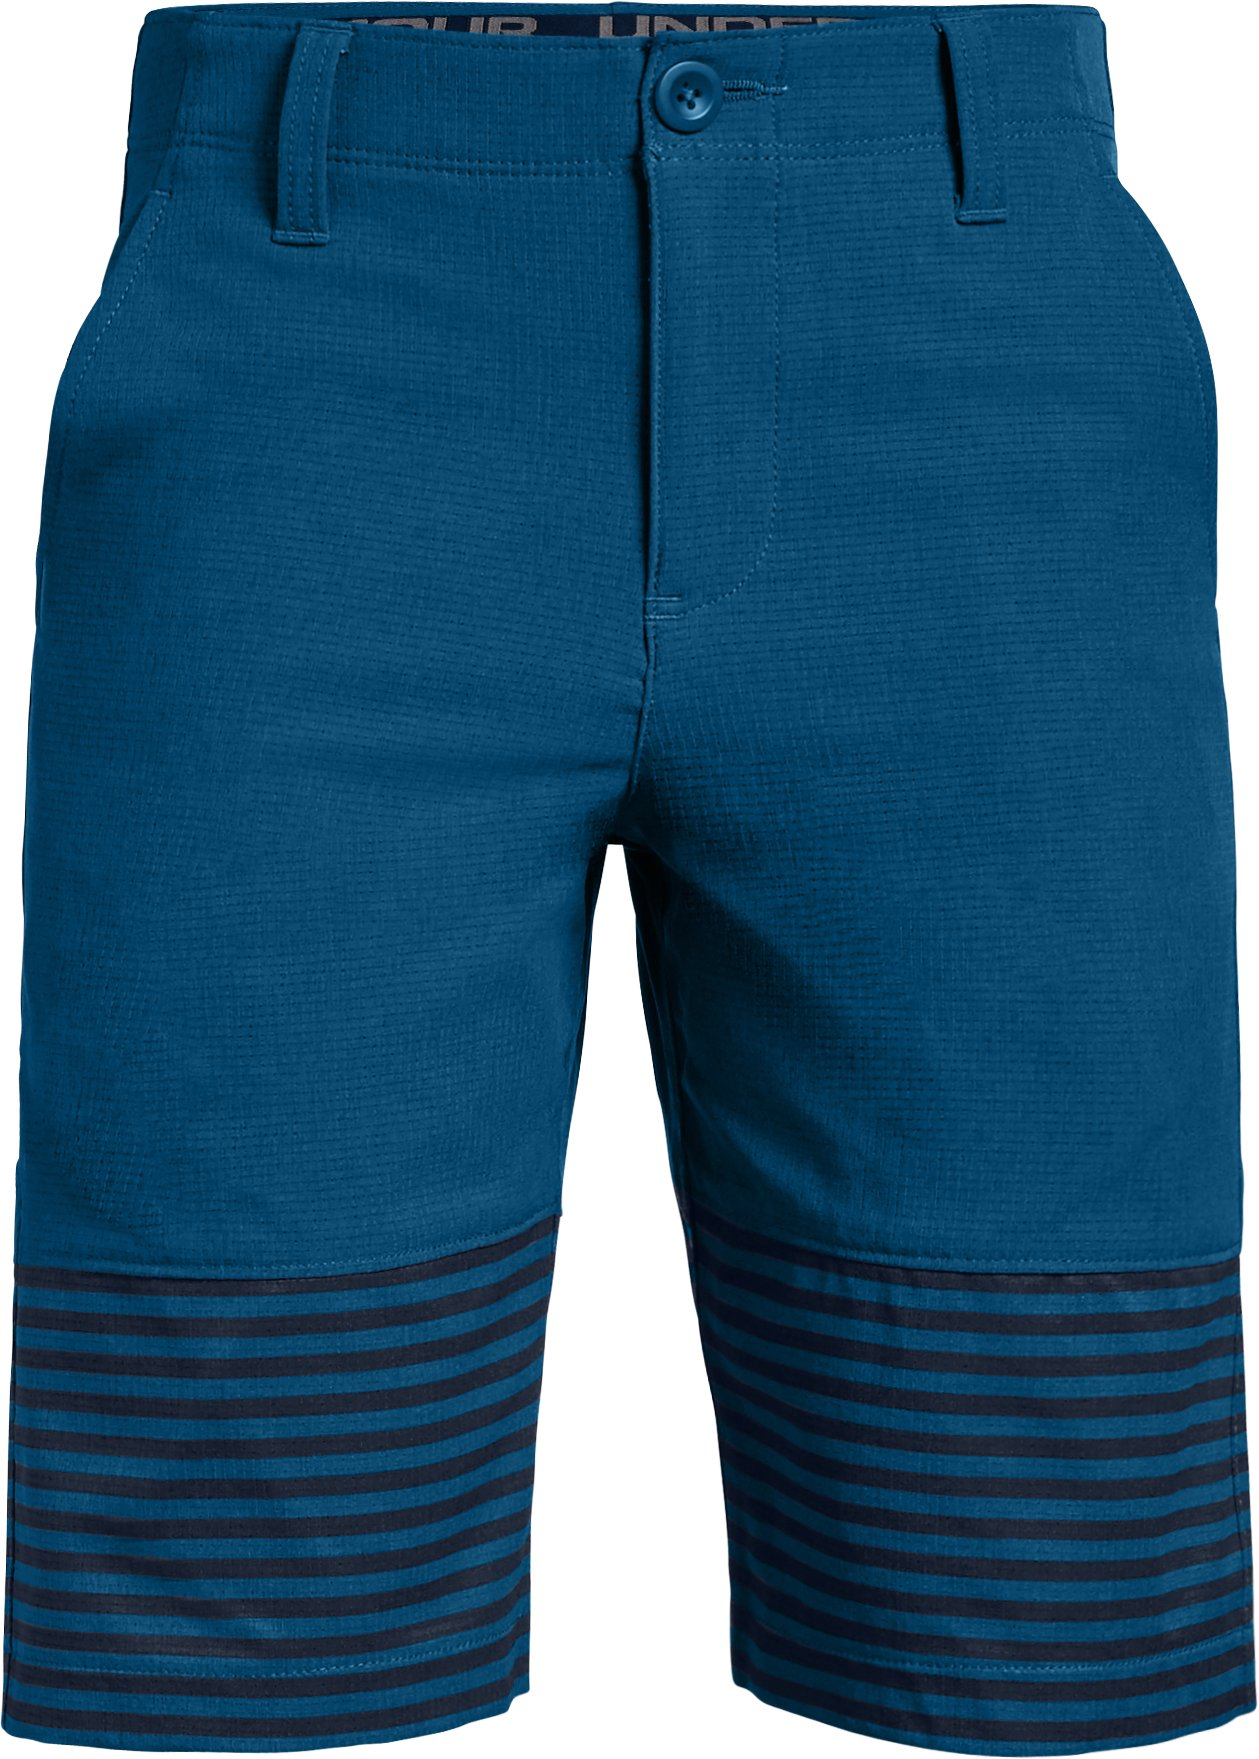 Boys' UA Match Play Vented Shorts, MOROCCAN BLUE